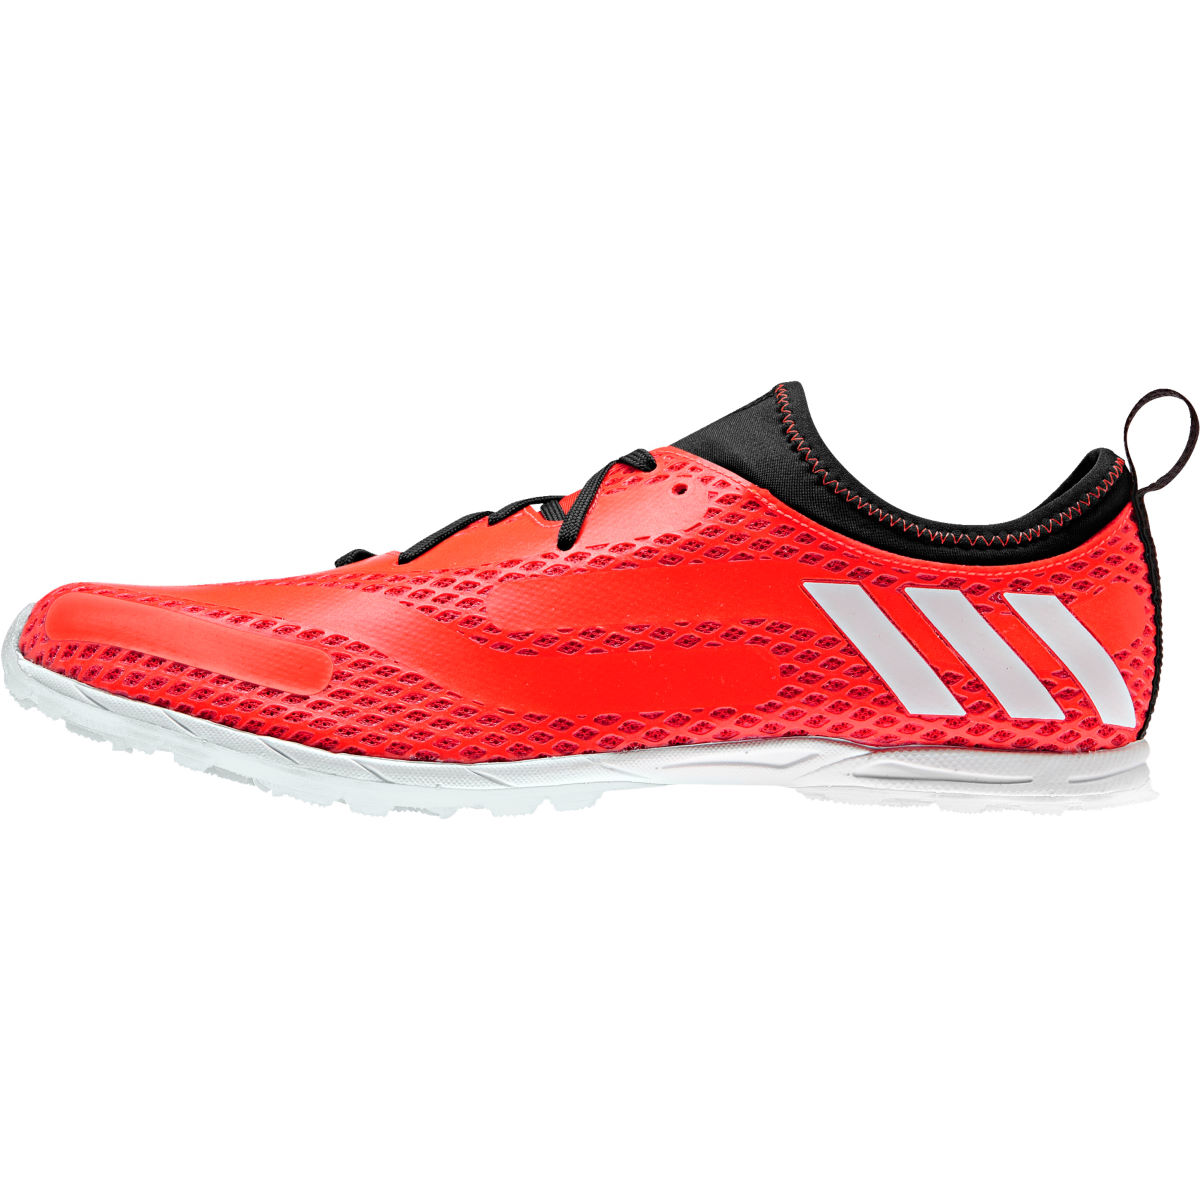 Chaussures Adidas XCS (AH16) - 12 UK Rouge Chaussures de running à pointes